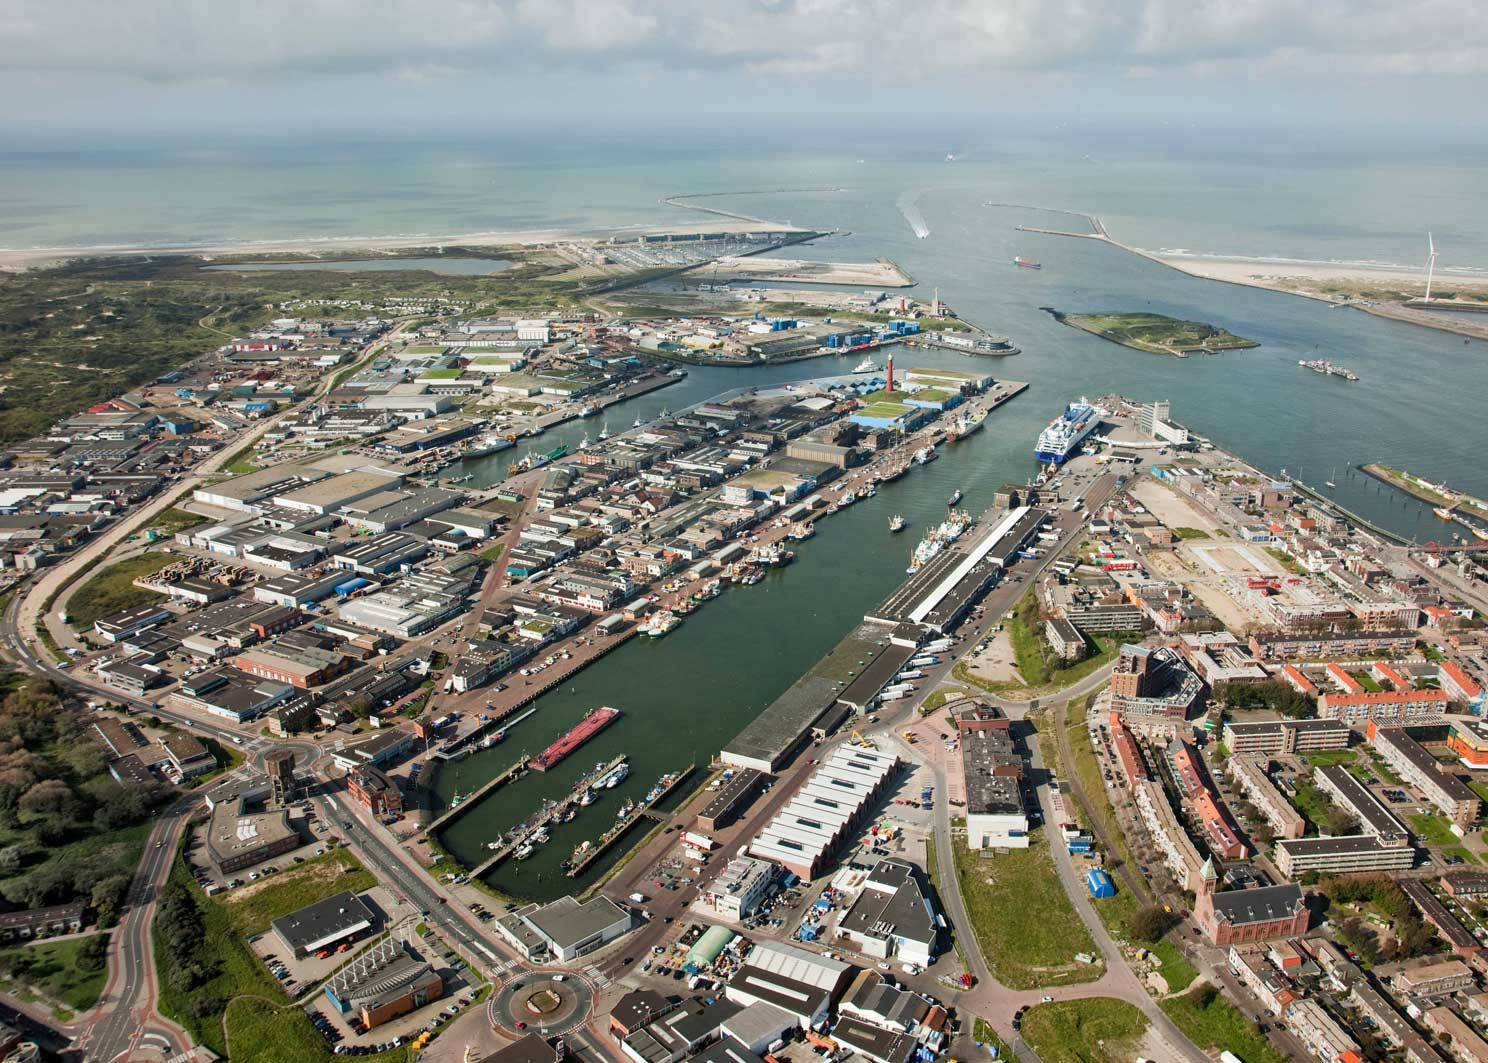 Aerial view of the port of Amsterdam